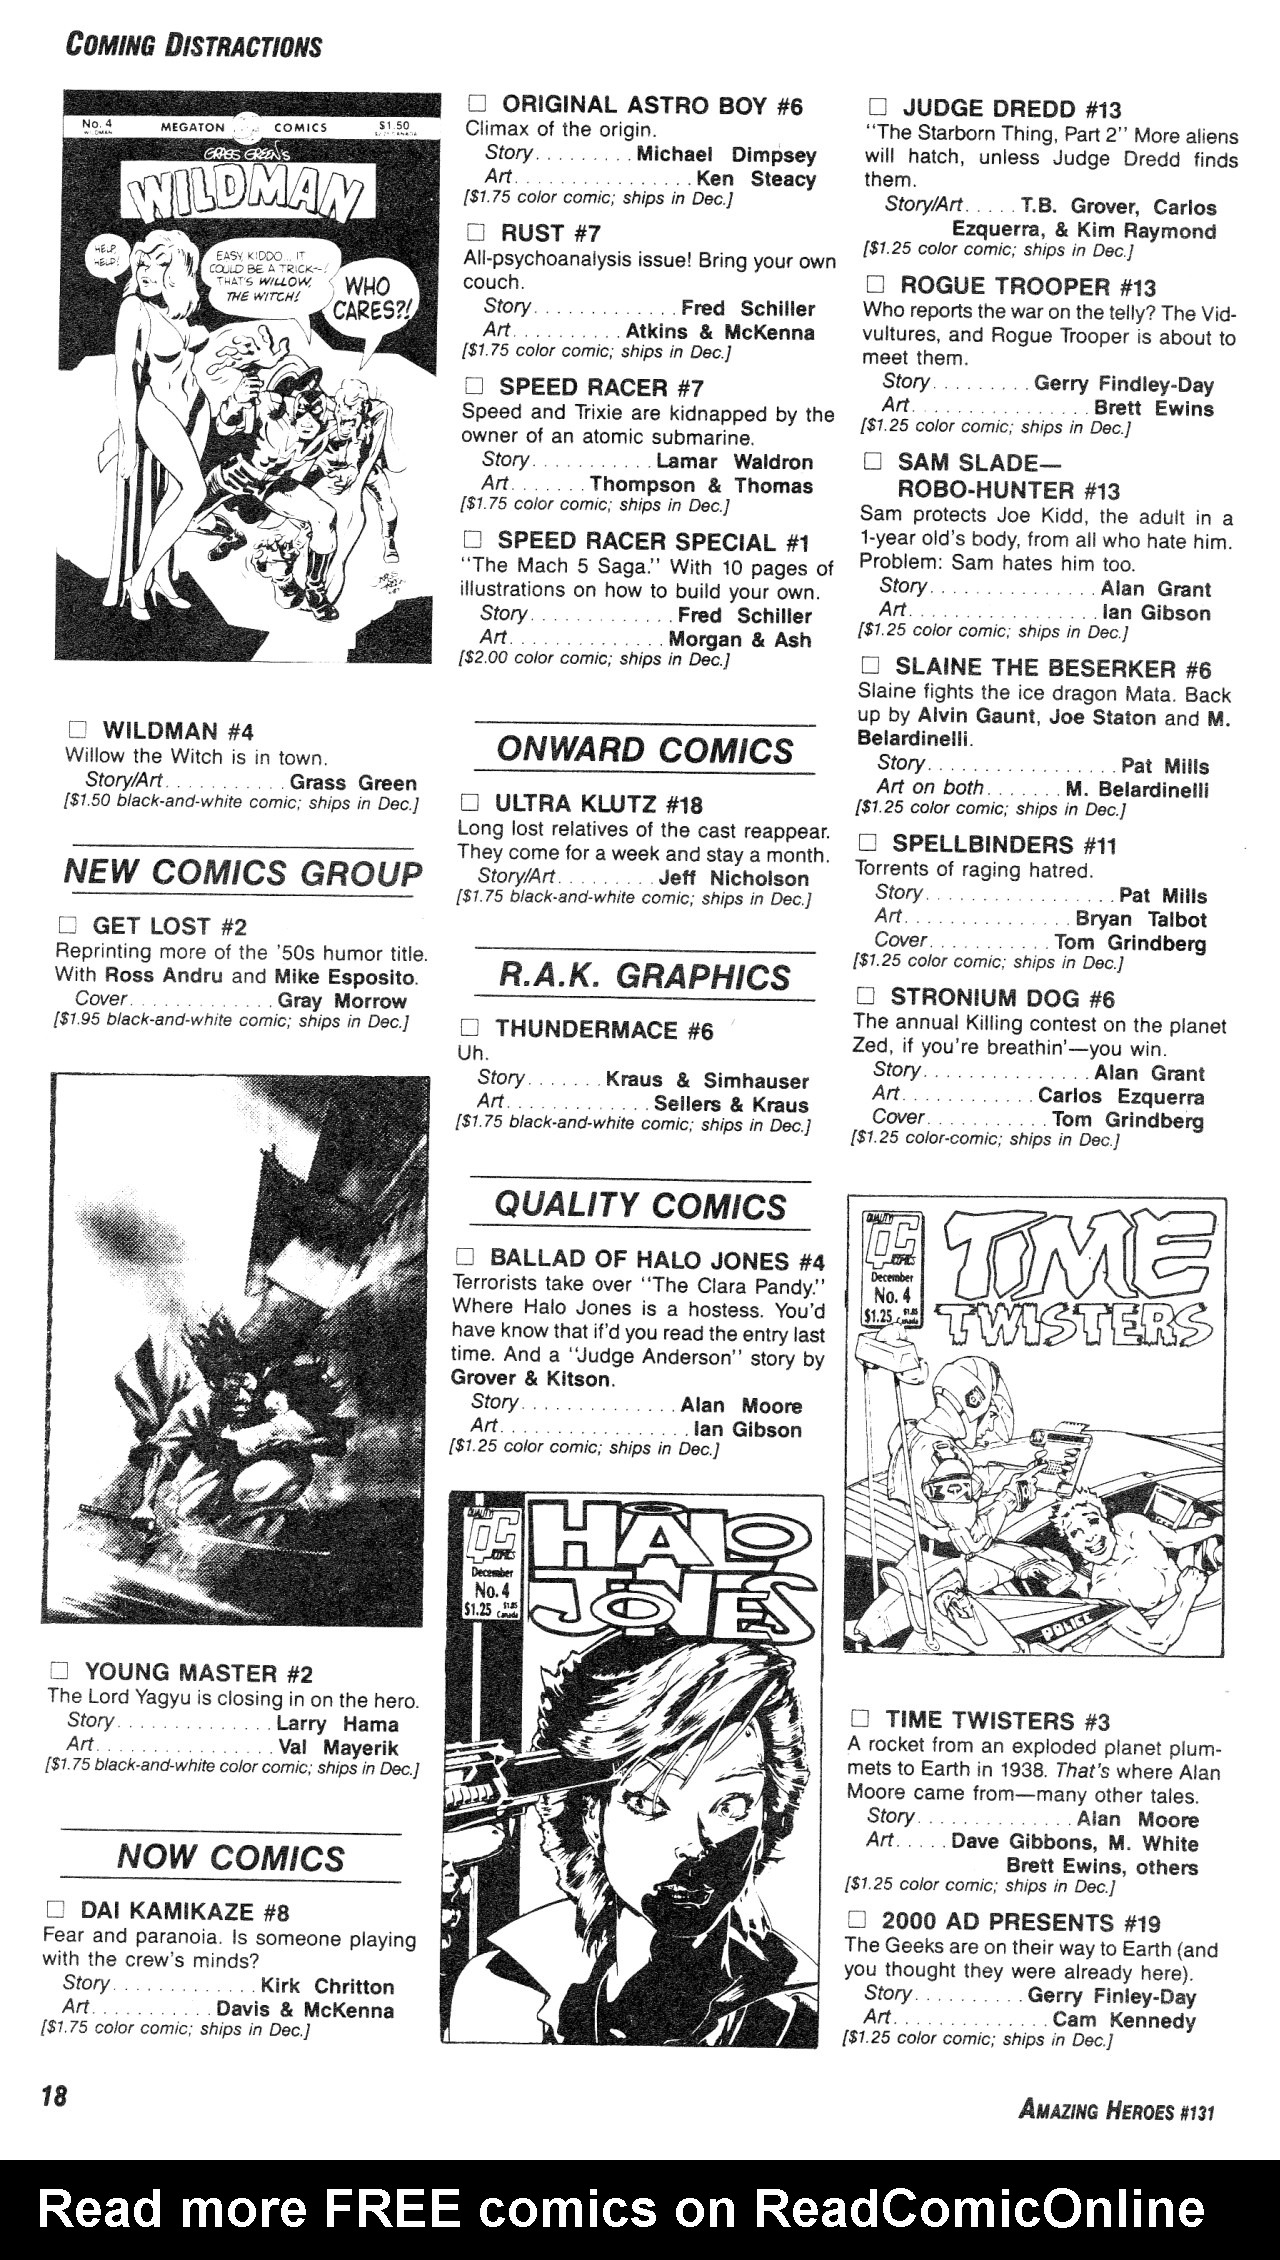 Read online Amazing Heroes comic -  Issue #131 - 18